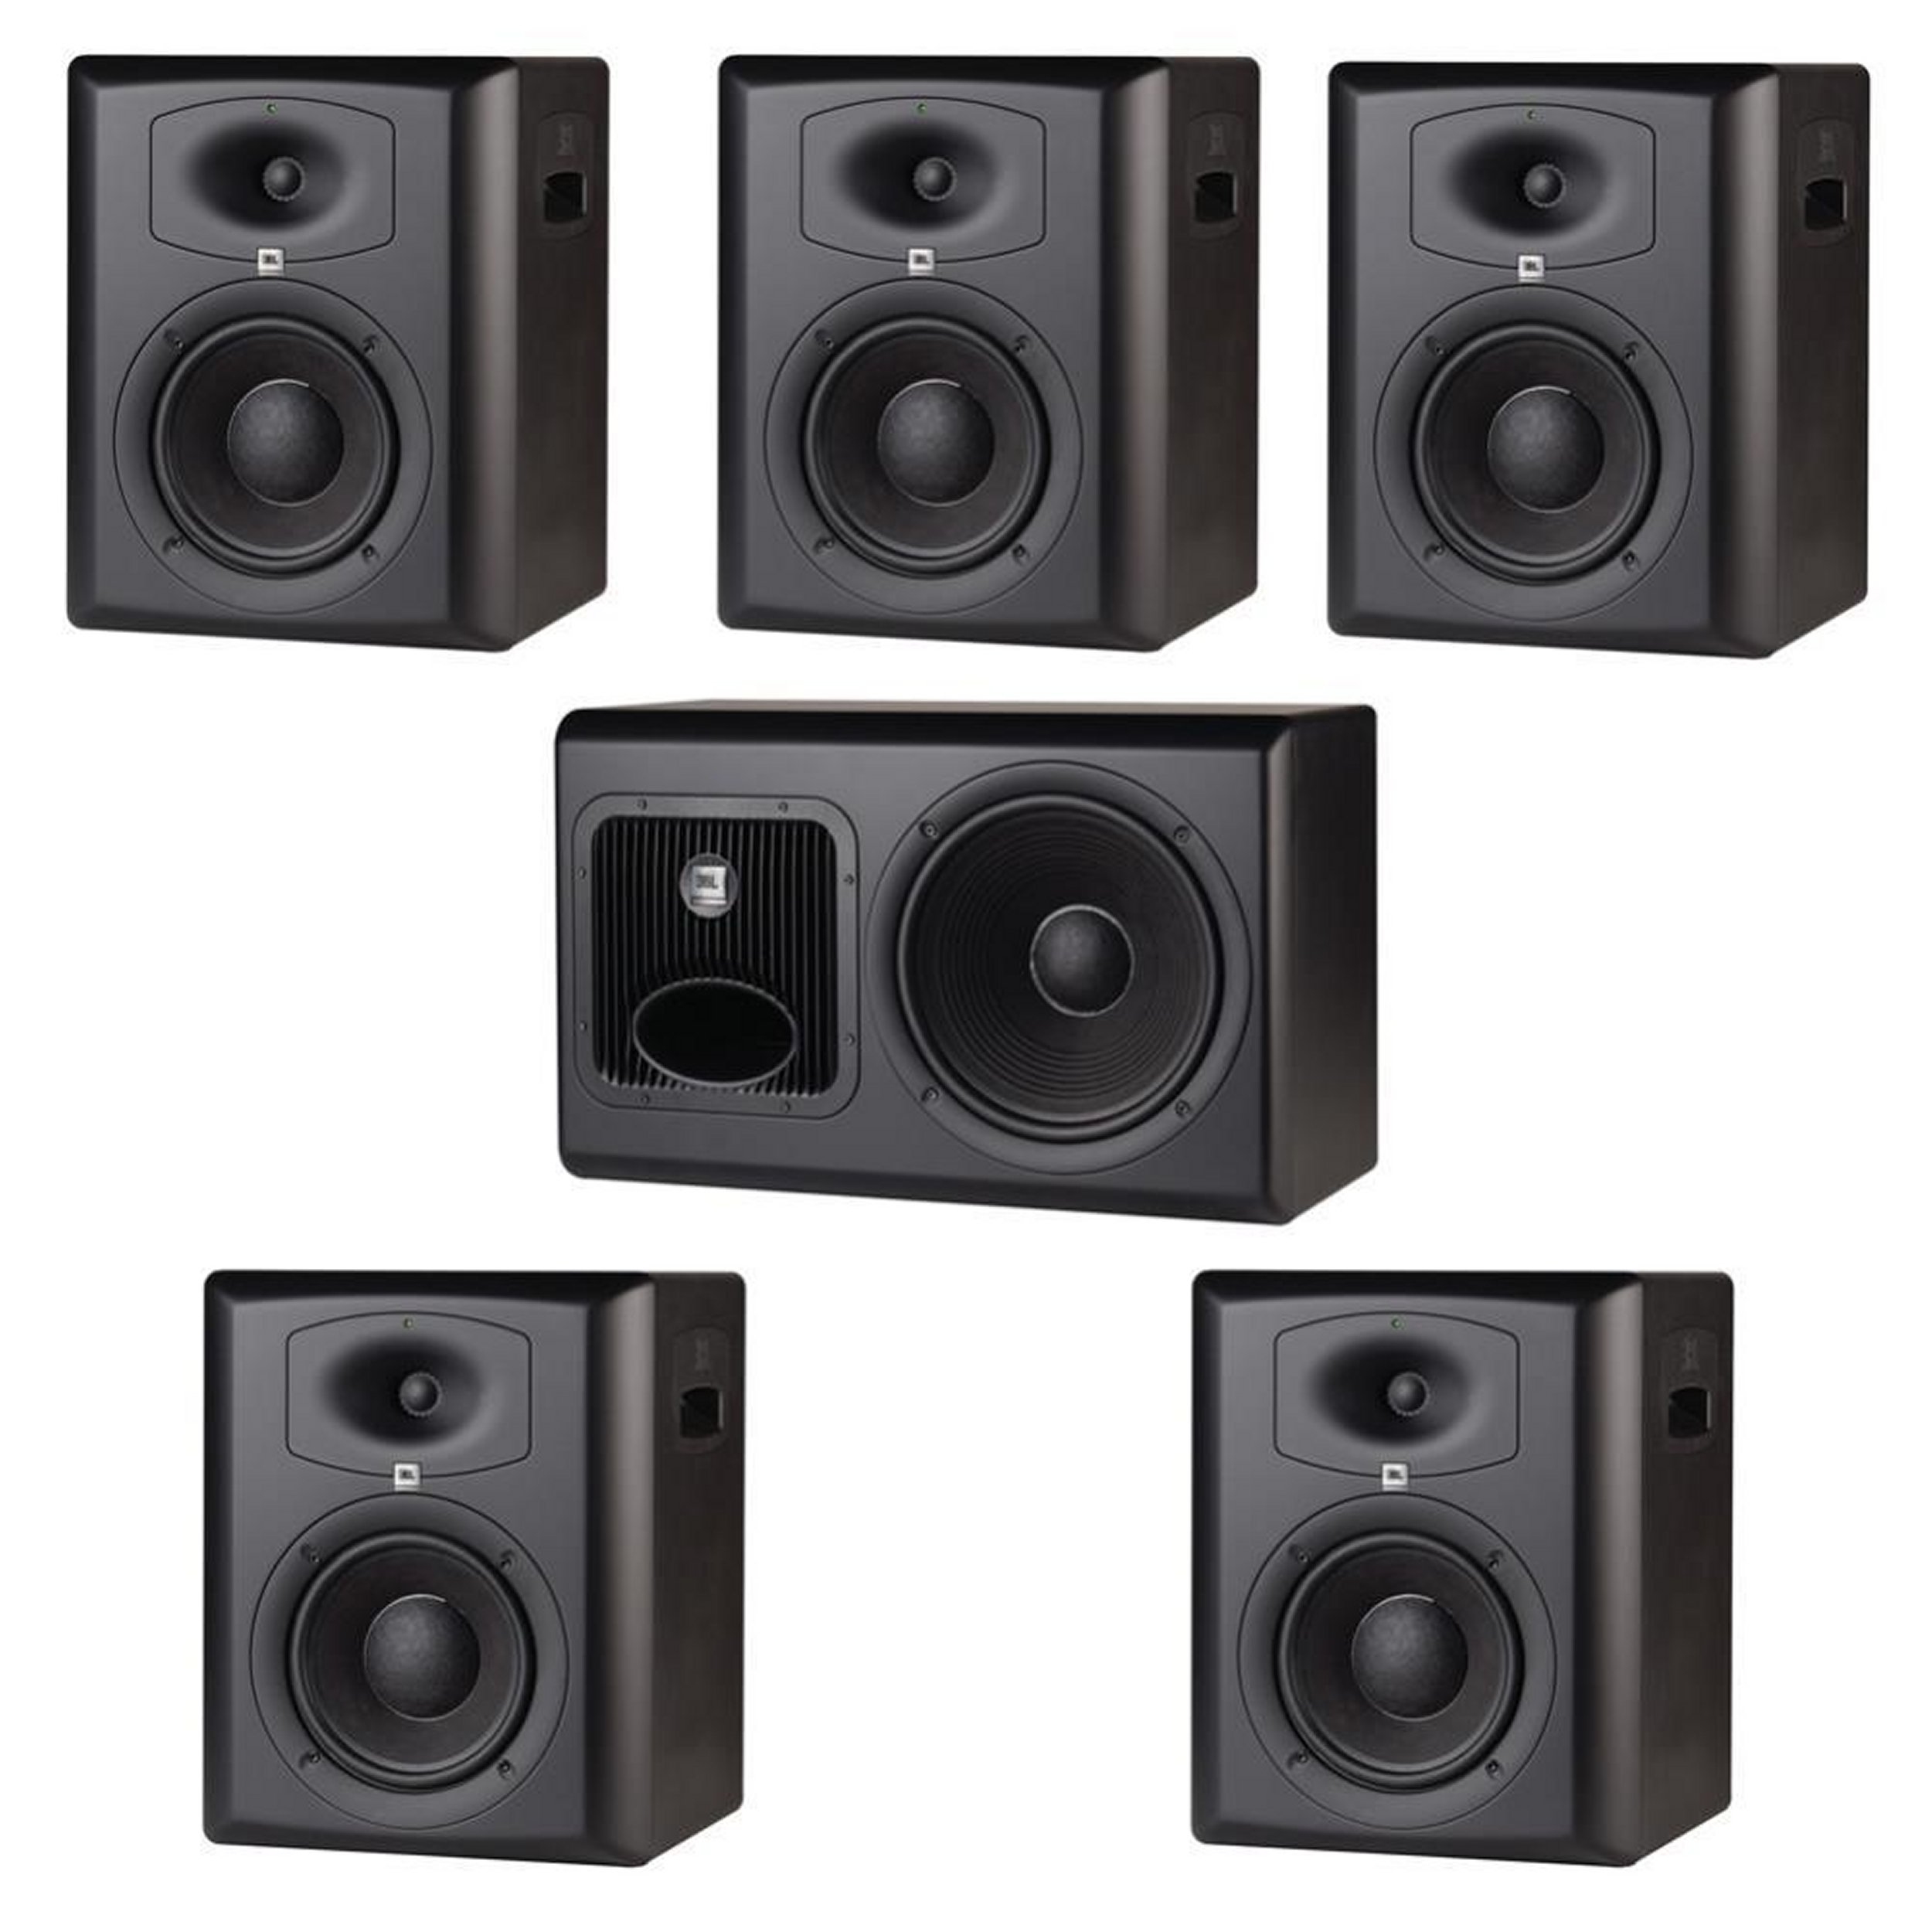 JBL LSR6328P 5.1 Surround System w/ LSR6328P 5pcs & 1pc LSR6312SP & RMC Calibration Kit